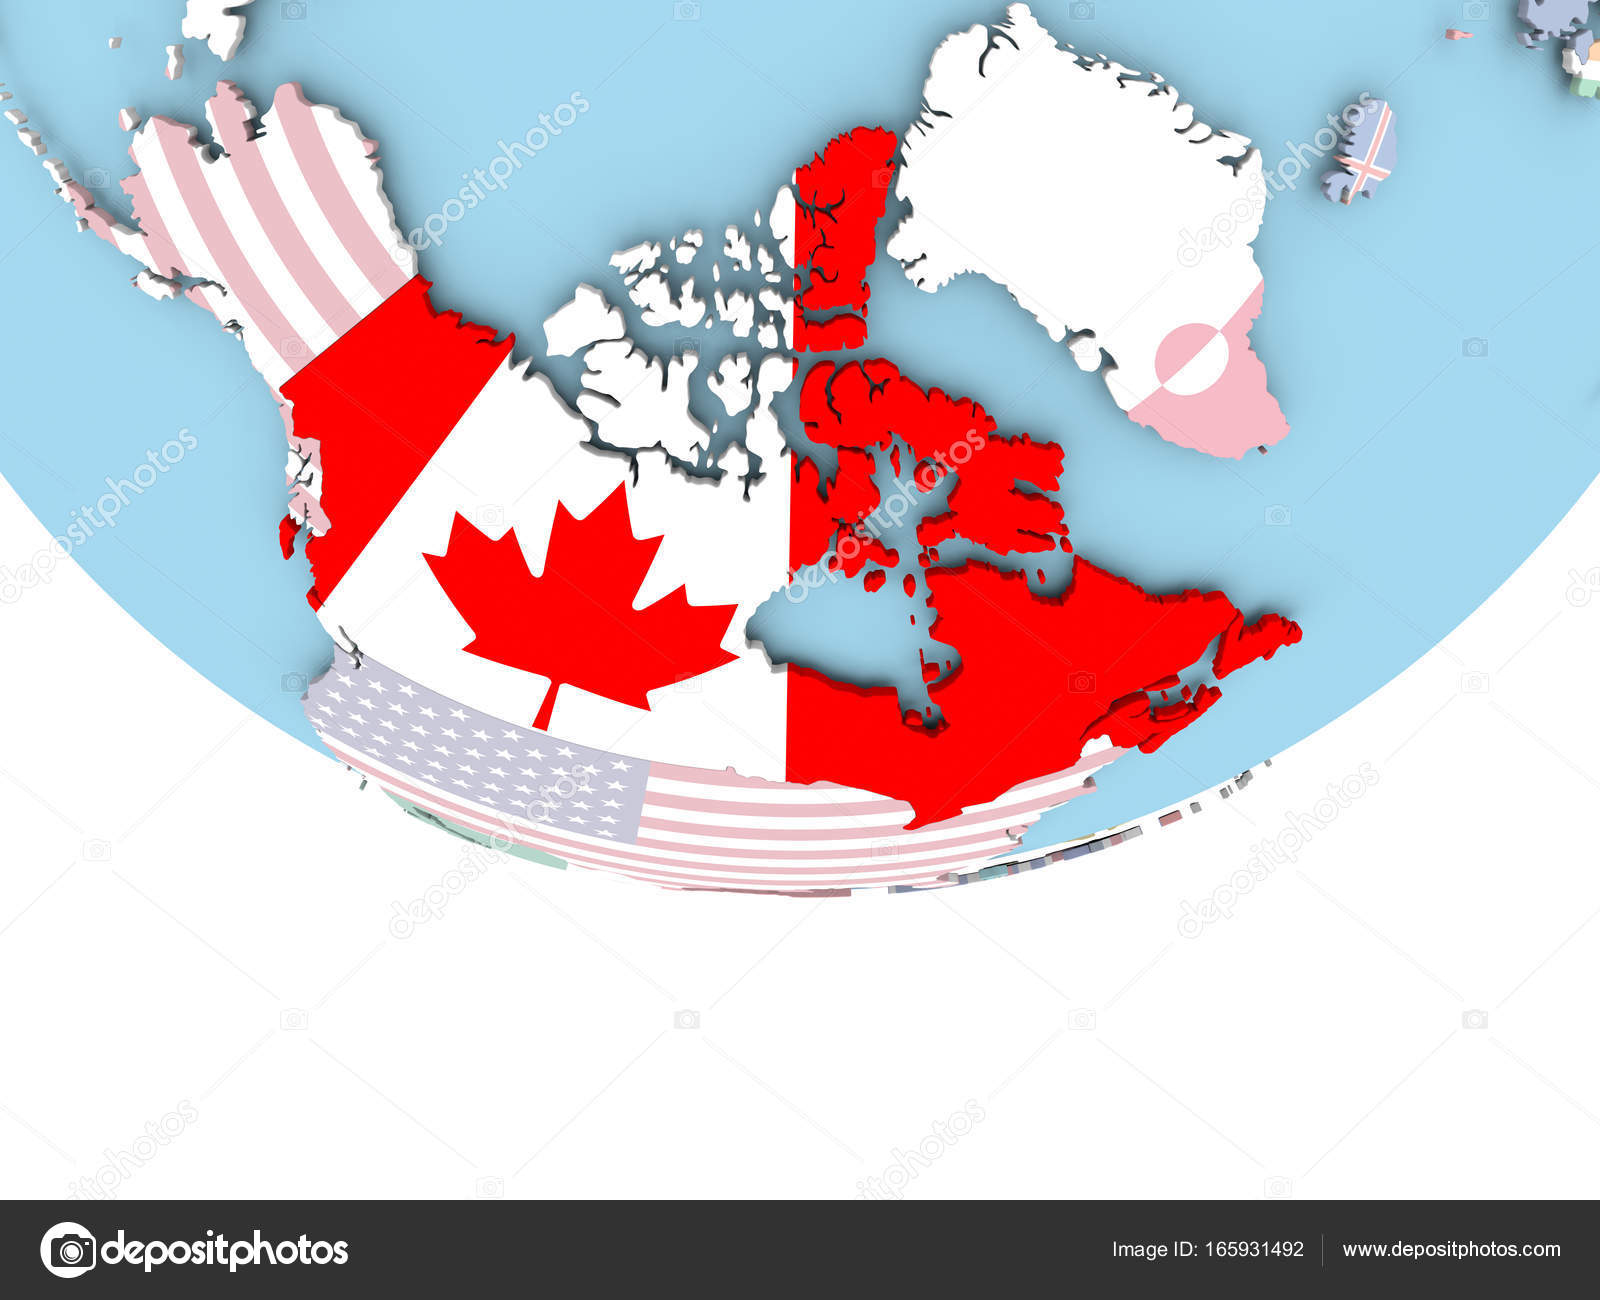 Map Of Canada On Globe.Map Of Canada With Flag On Globe Stock Photo C Tom Griger 165931492